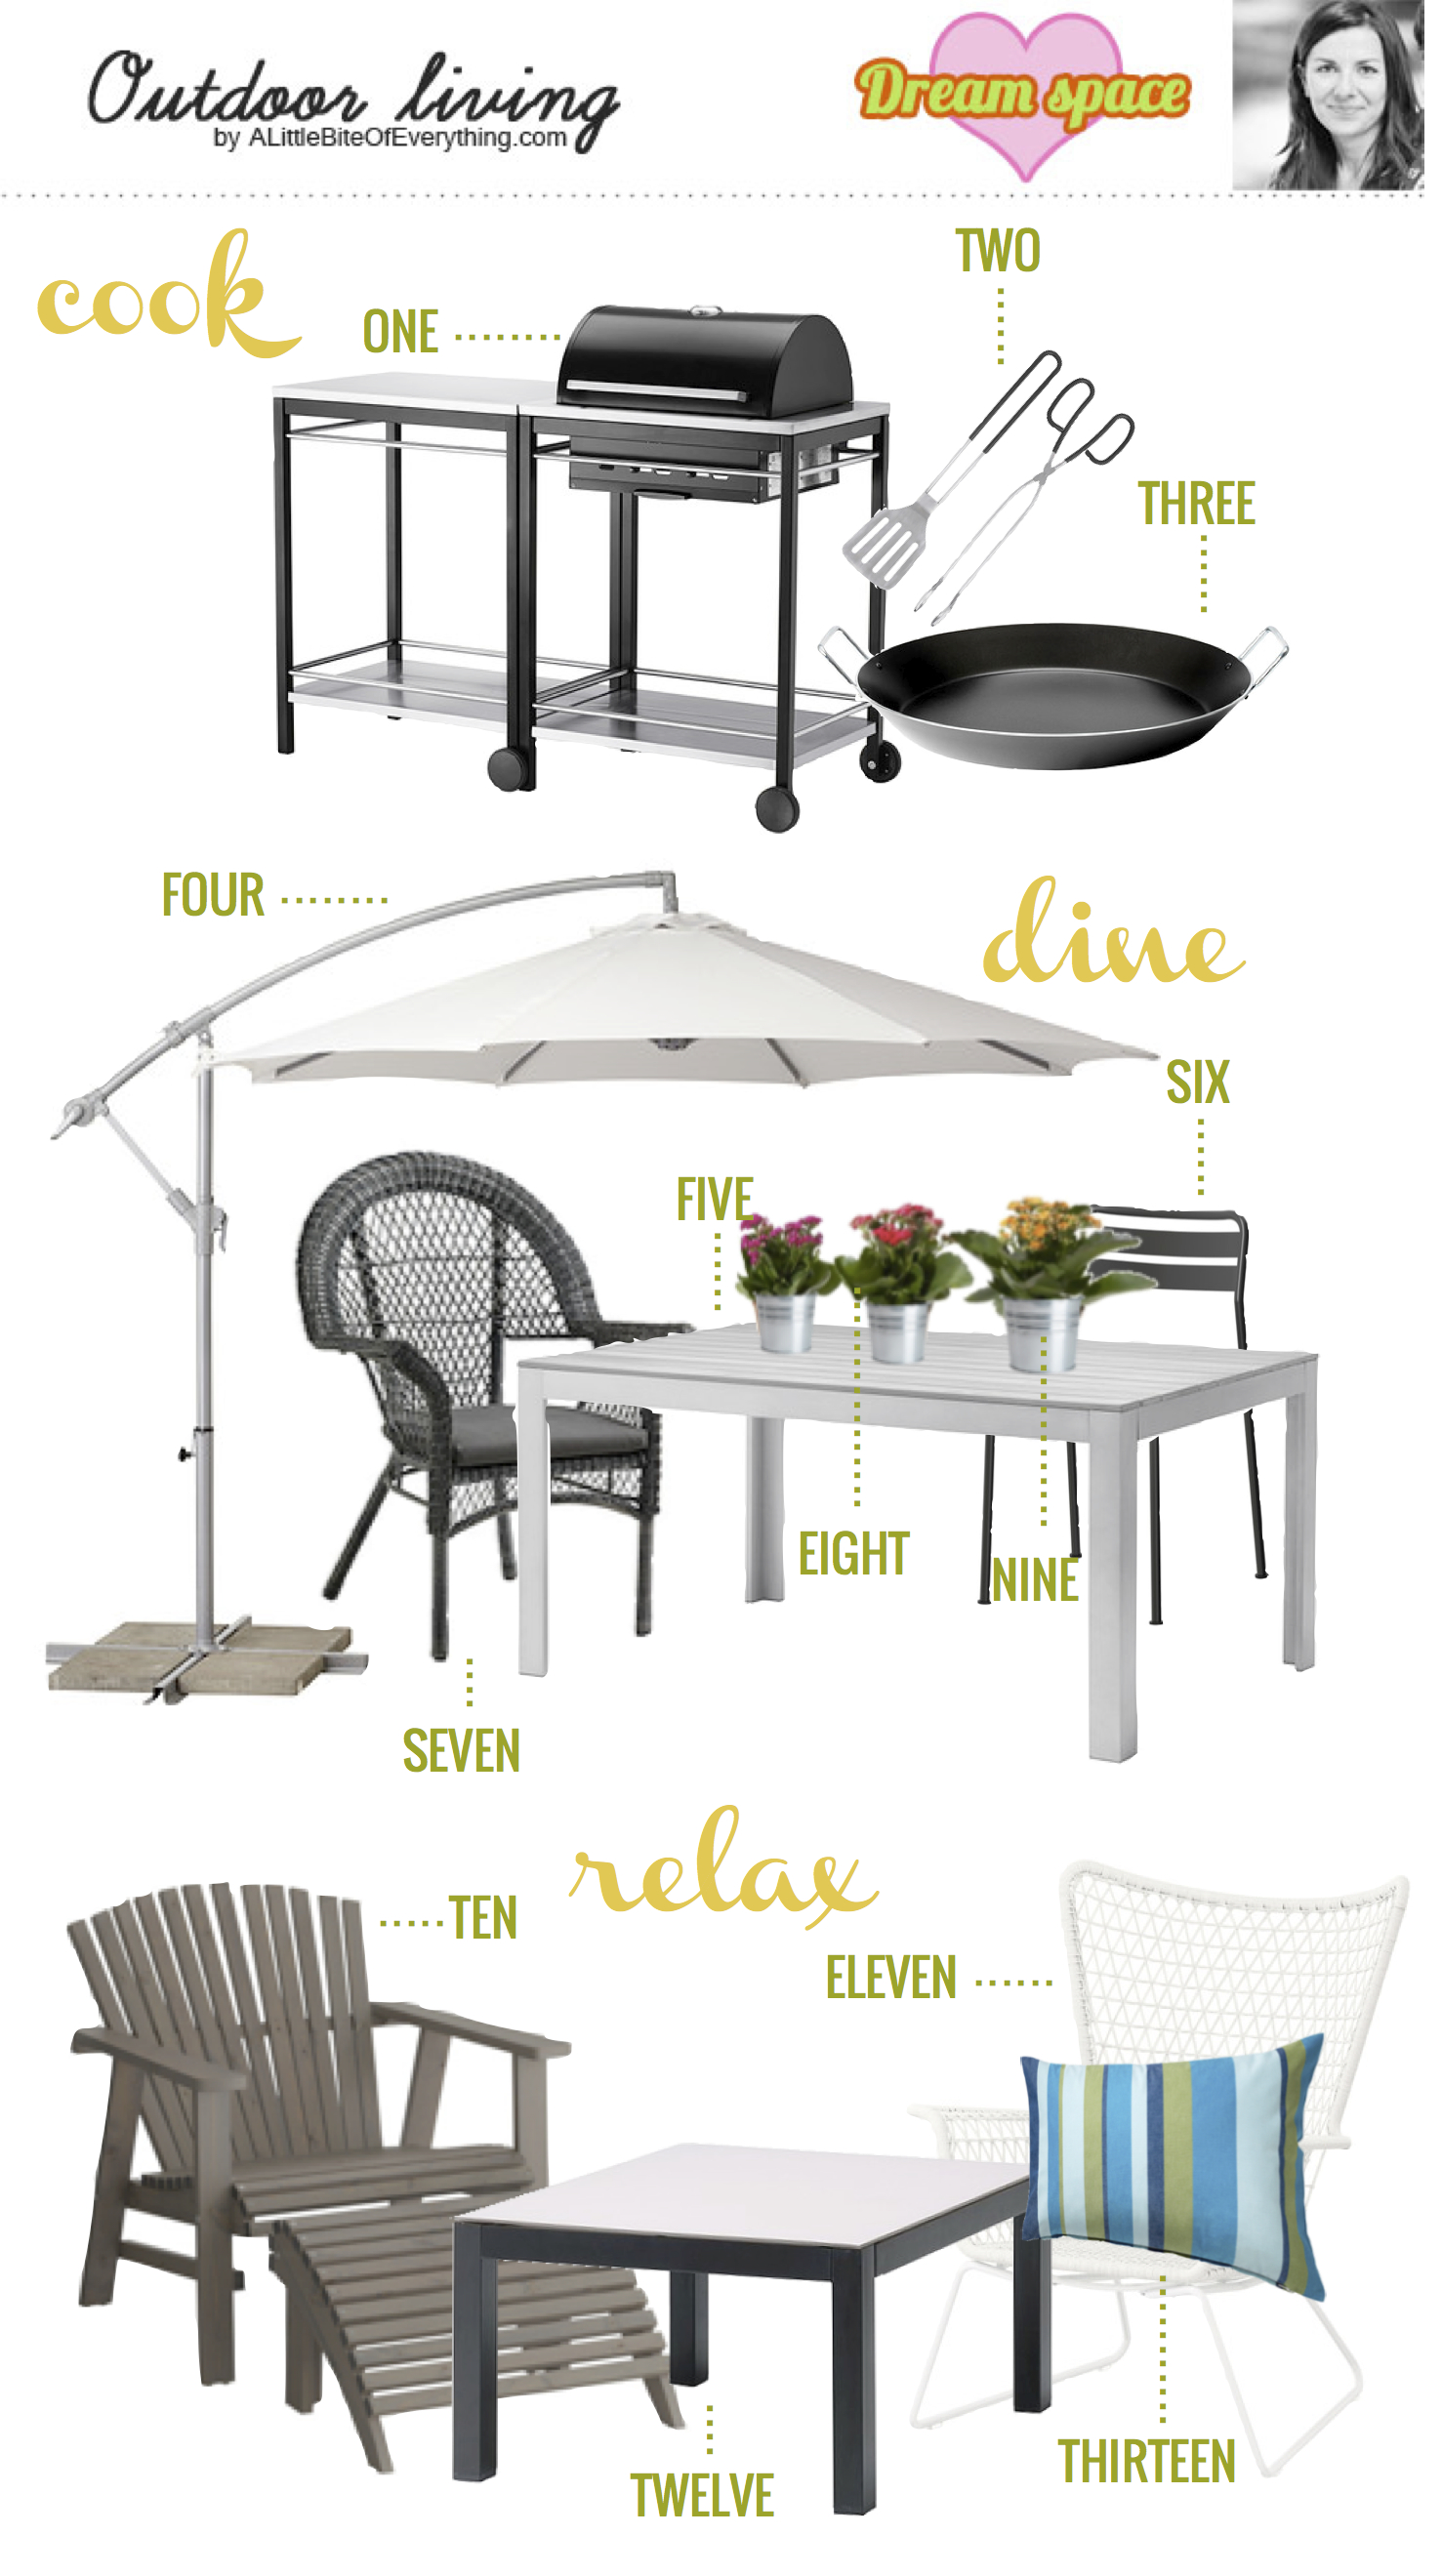 moodboardikea-outdoor